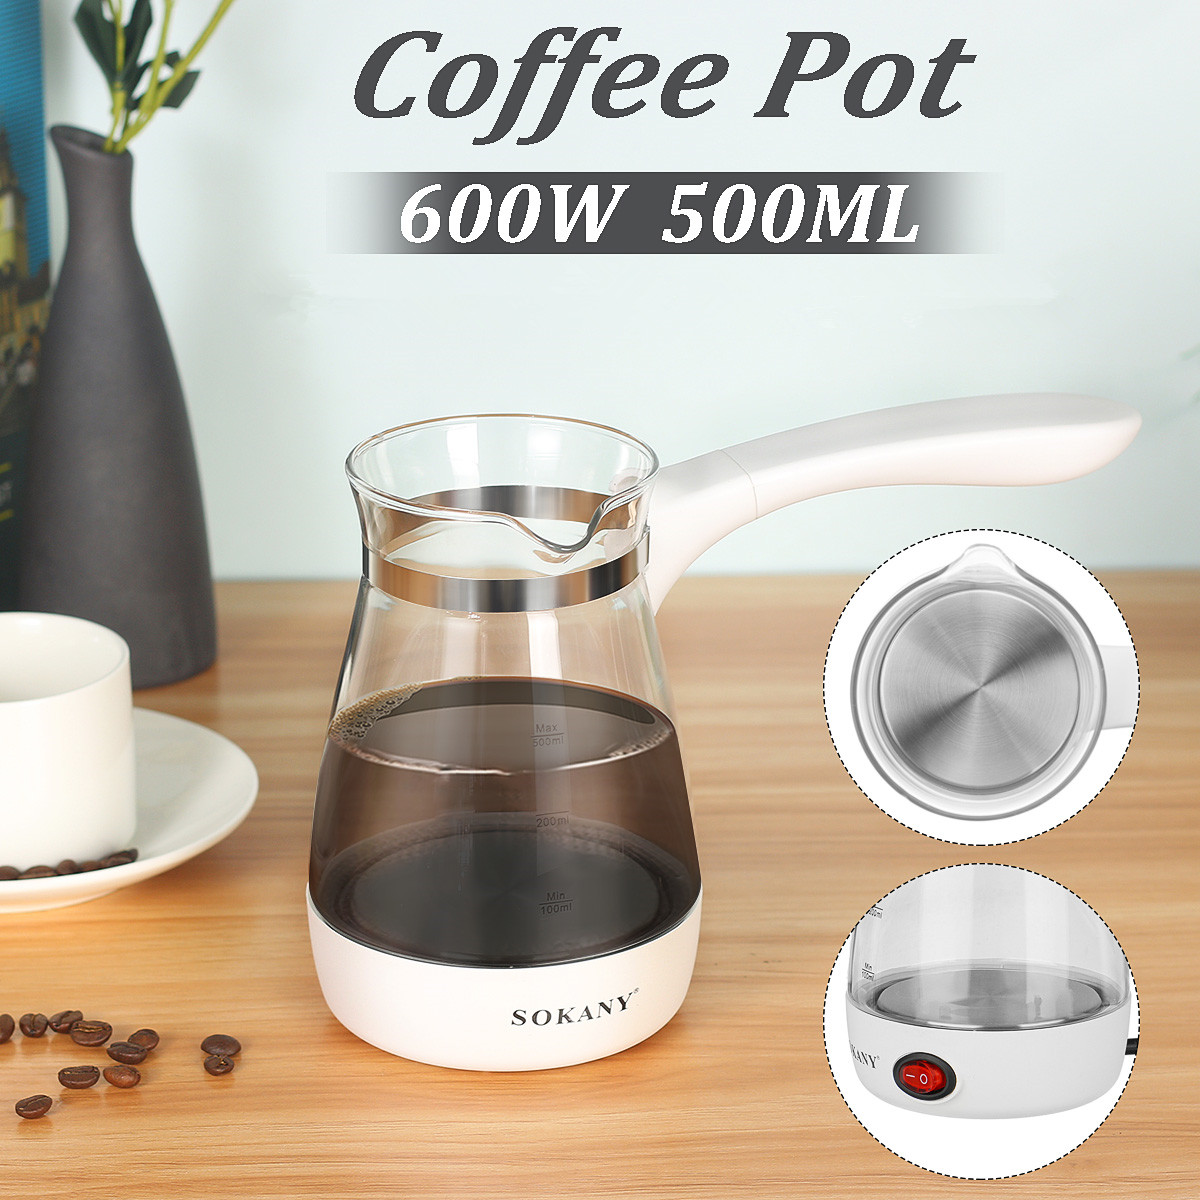 500ml Coffee Maker Pot Home Electrical Turkish Greek Coffee Kettle Portable EU Plug Clear Glass + Stainless Steel Heat Resistant